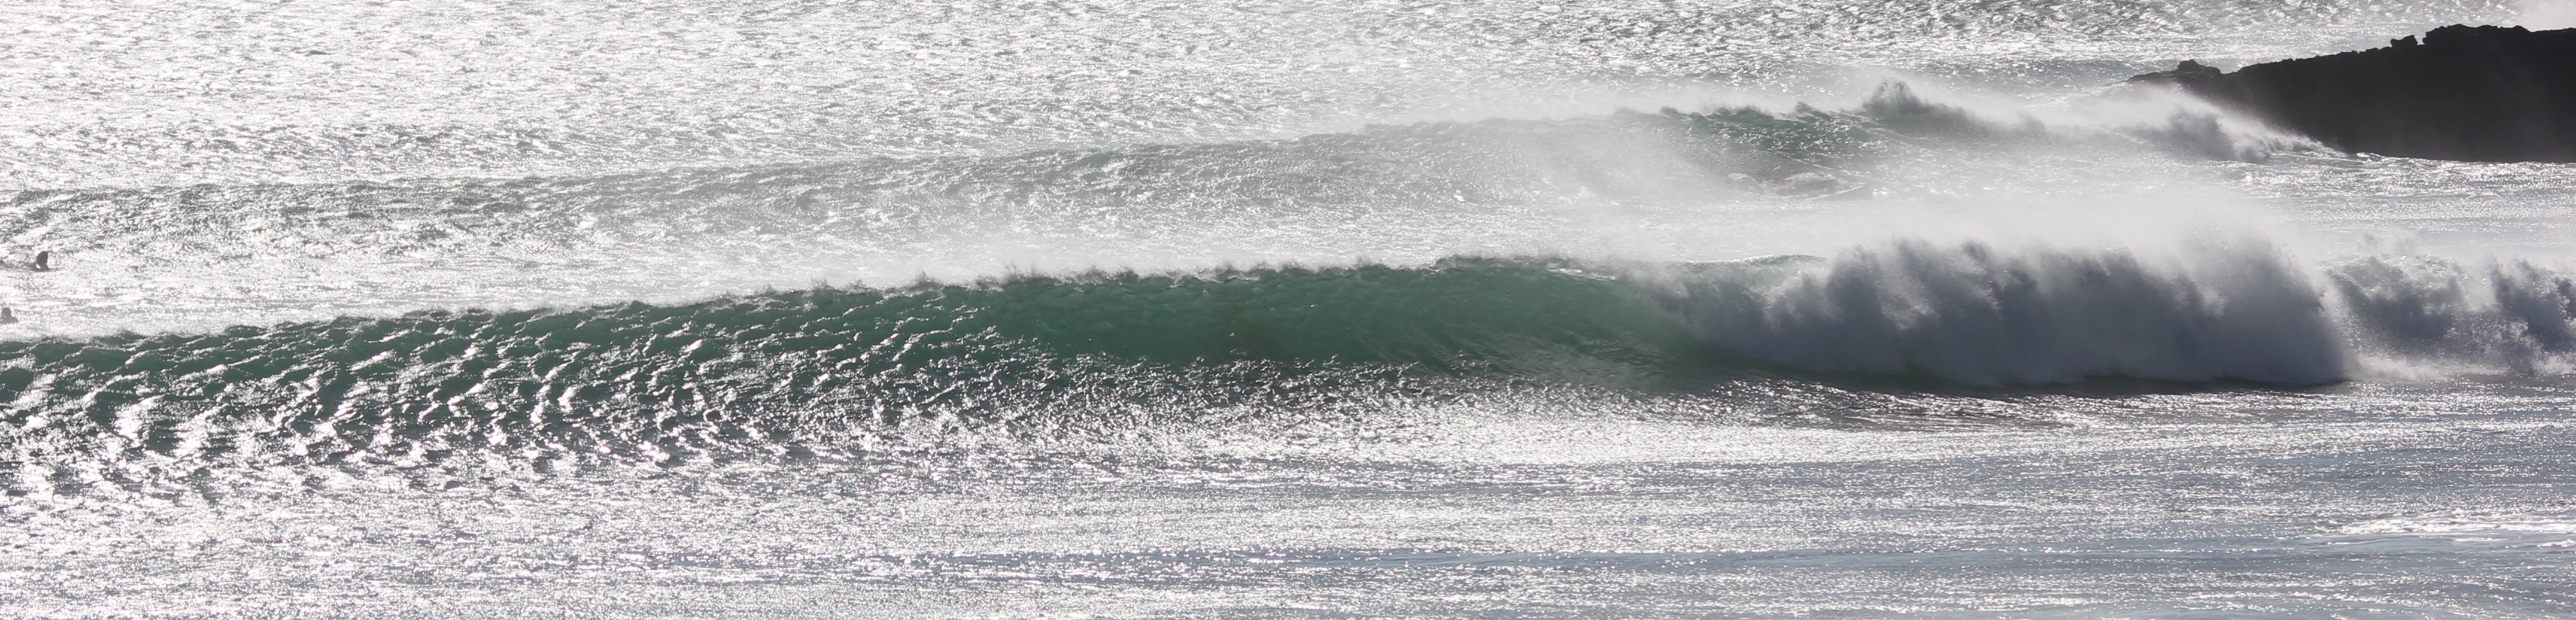 Welcome to Westsurf Morocco!